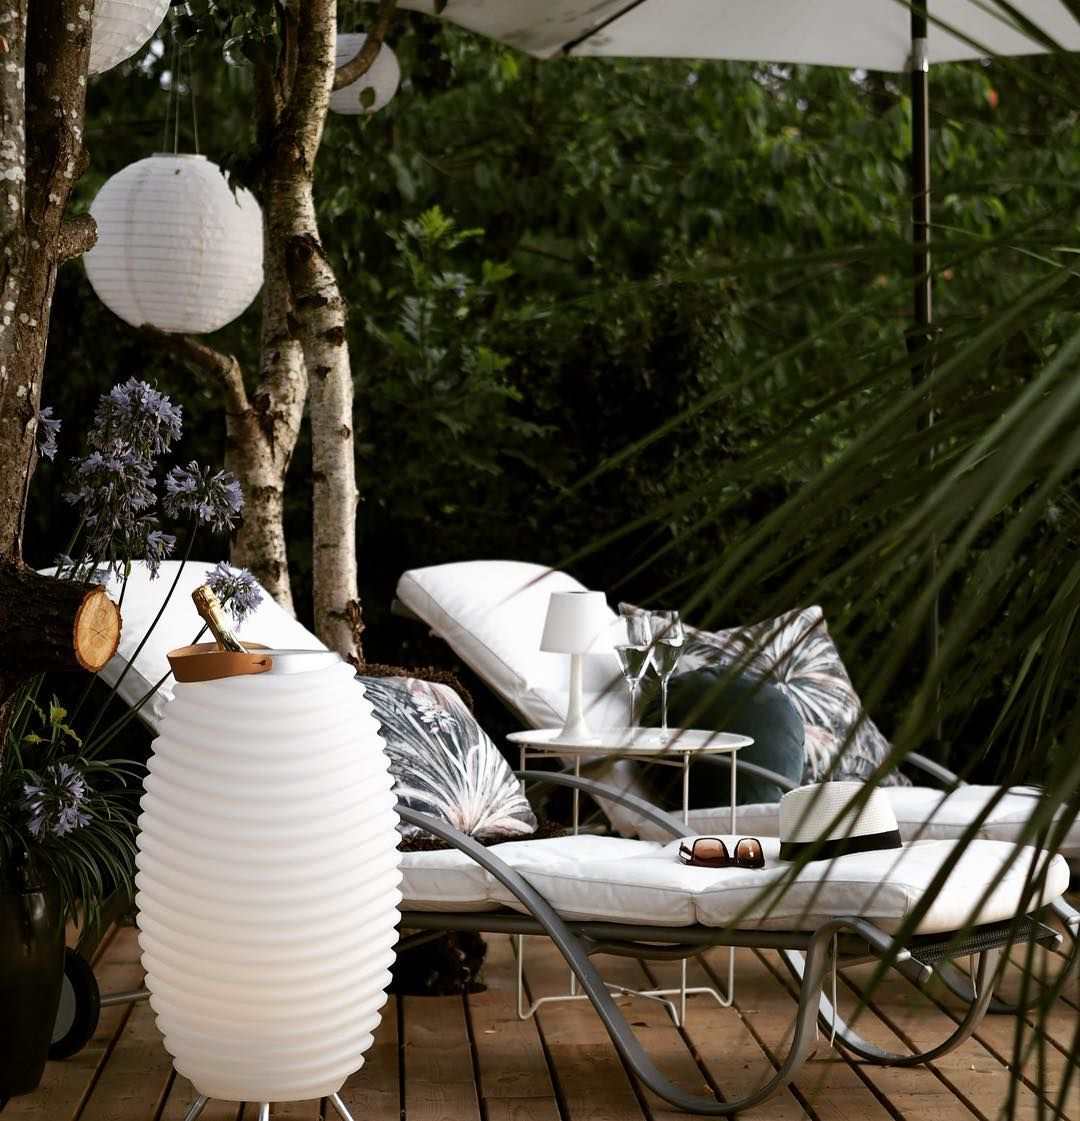 Just A Nice Summer Picture To Beat Your Blue Monday Lamp Bluemonday Wine Bluetoothspeakers Kooduu Synergy Li In 2020 Patio Umbrella Patio Summer Pictures